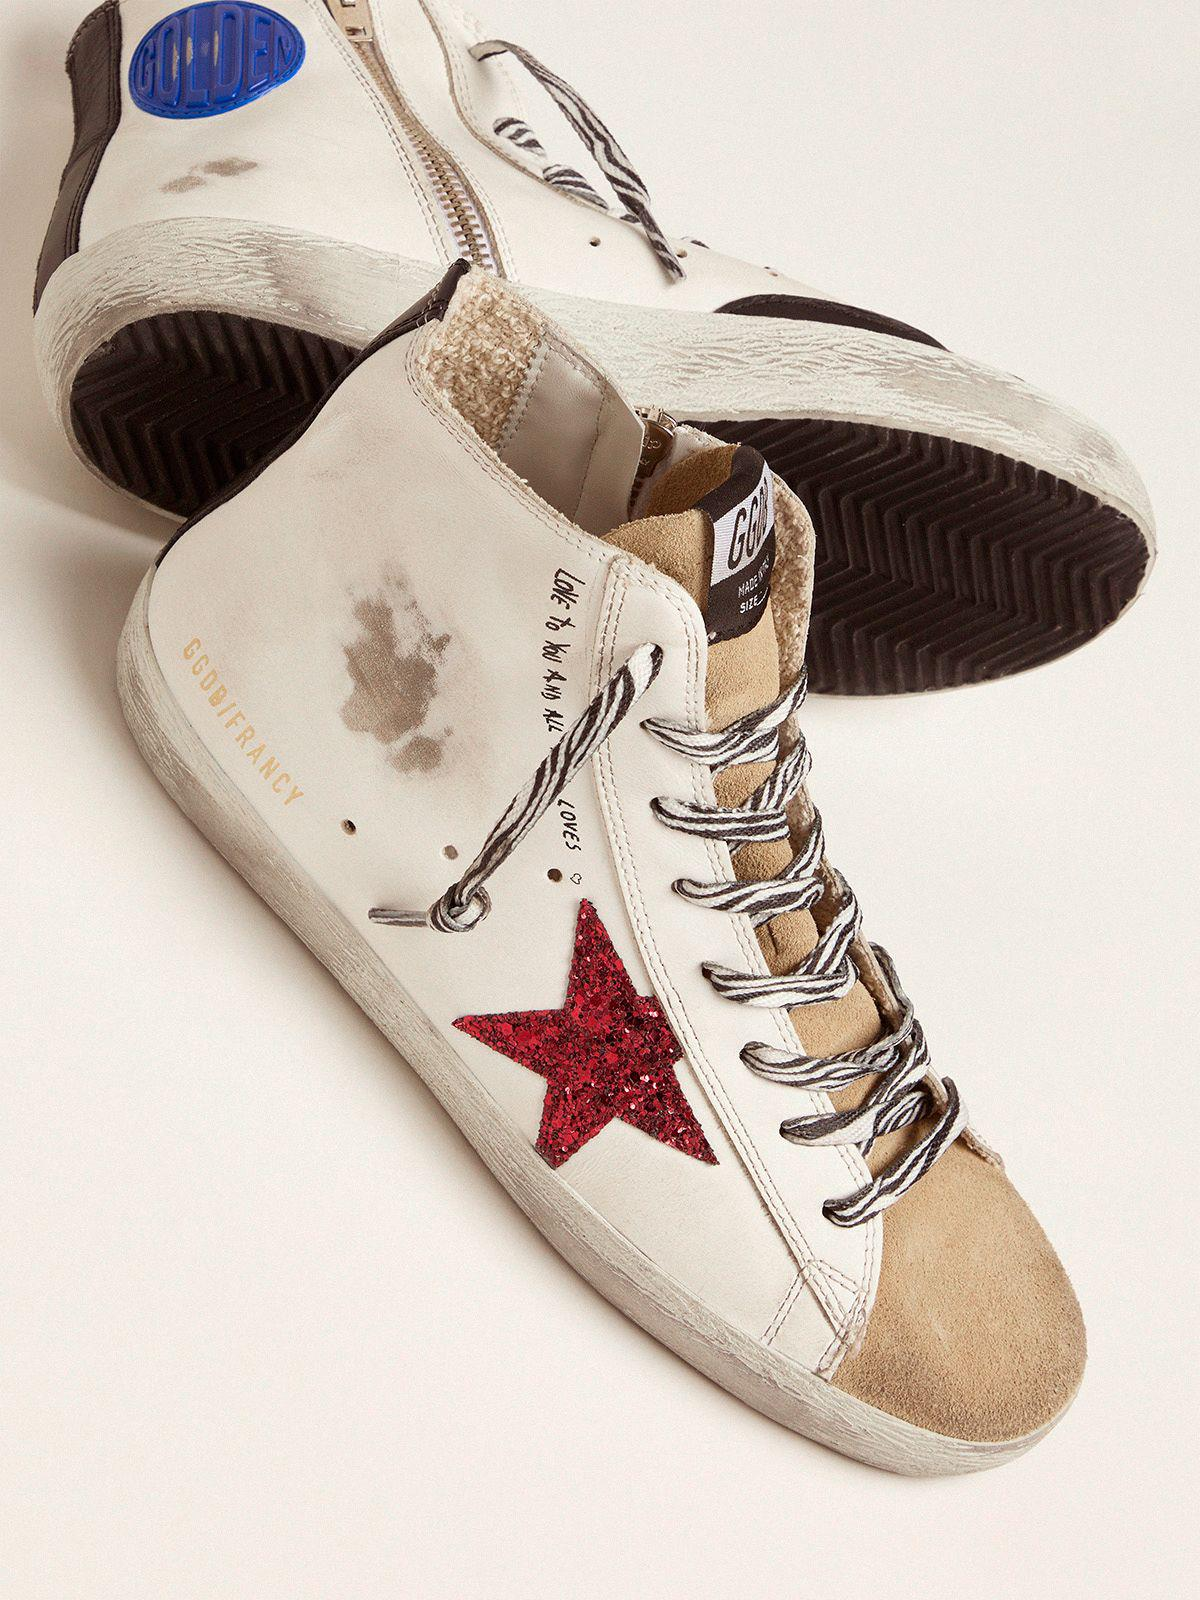 Francy sneakers with red glittery star and handwritten lettering 2